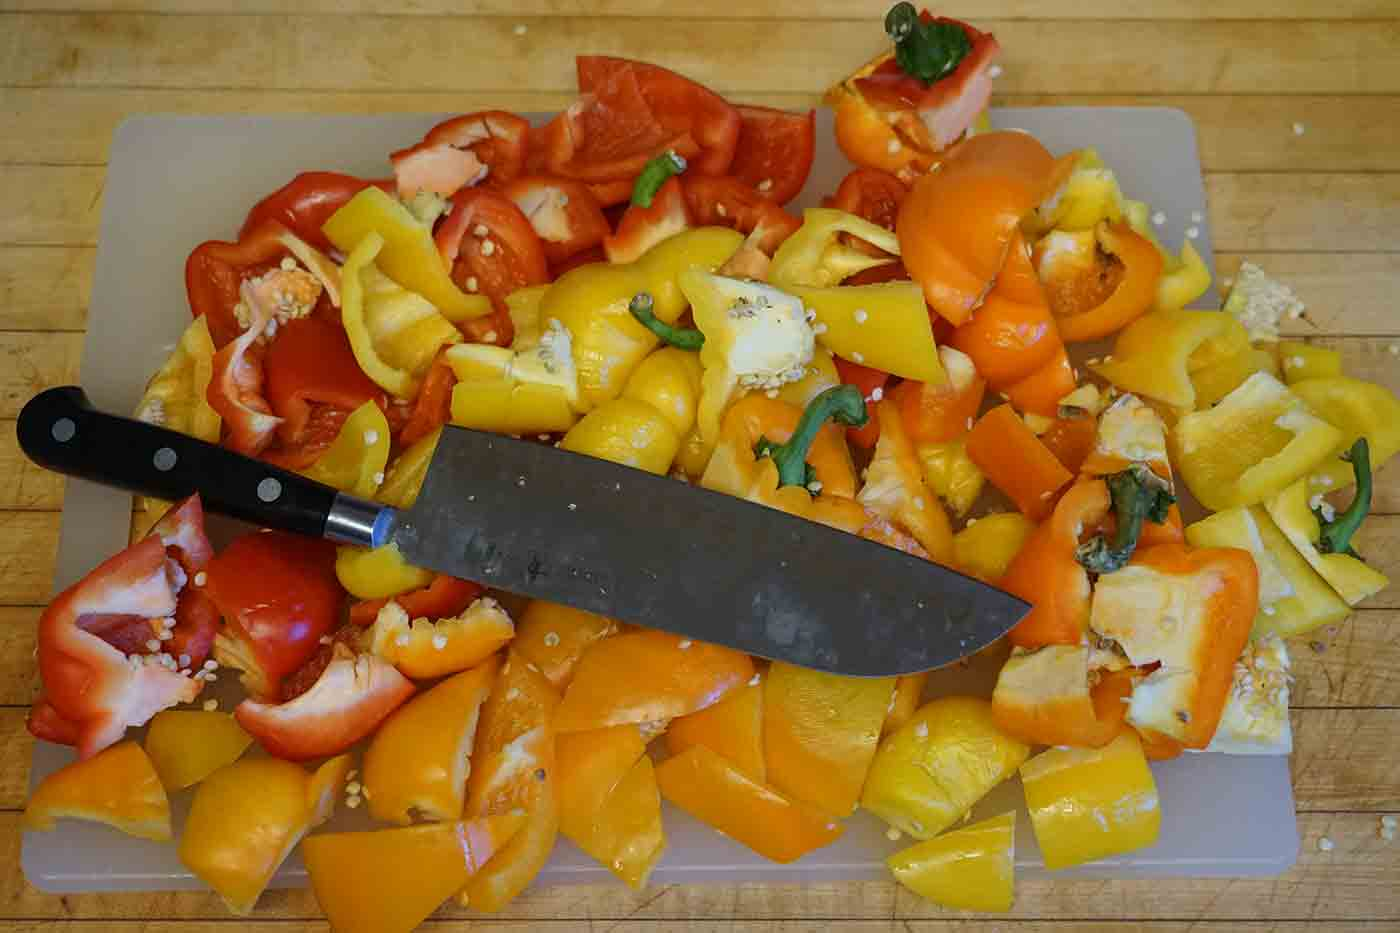 spoiled veggies chopped on a kitchen countertop for composting with nitrogen